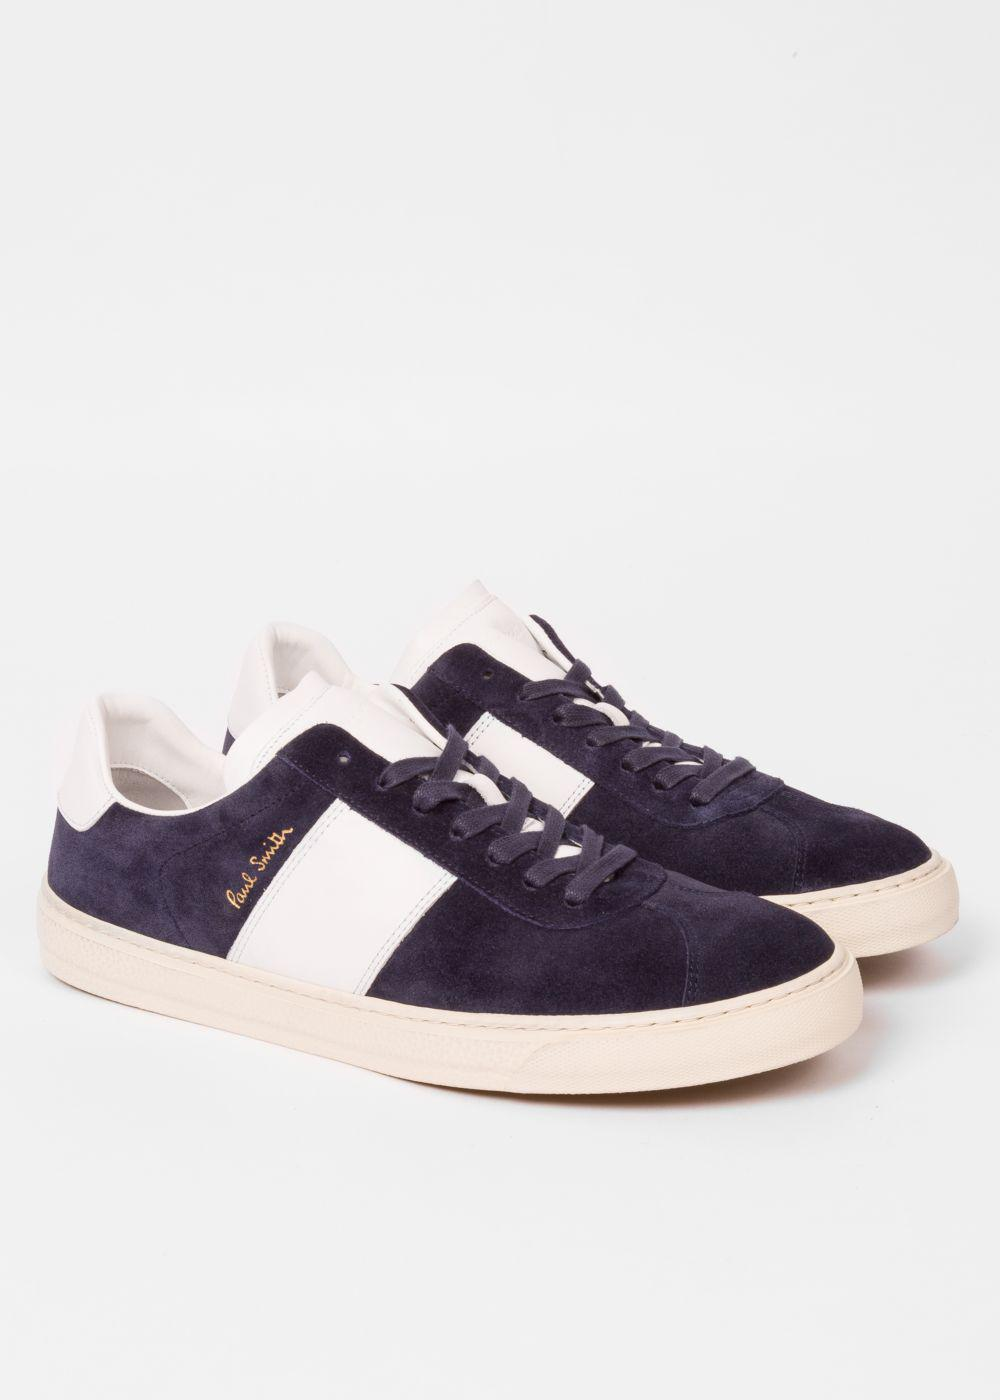 Paul Smith Men's Navy Suede 'levon' Trainers in Blue for Men